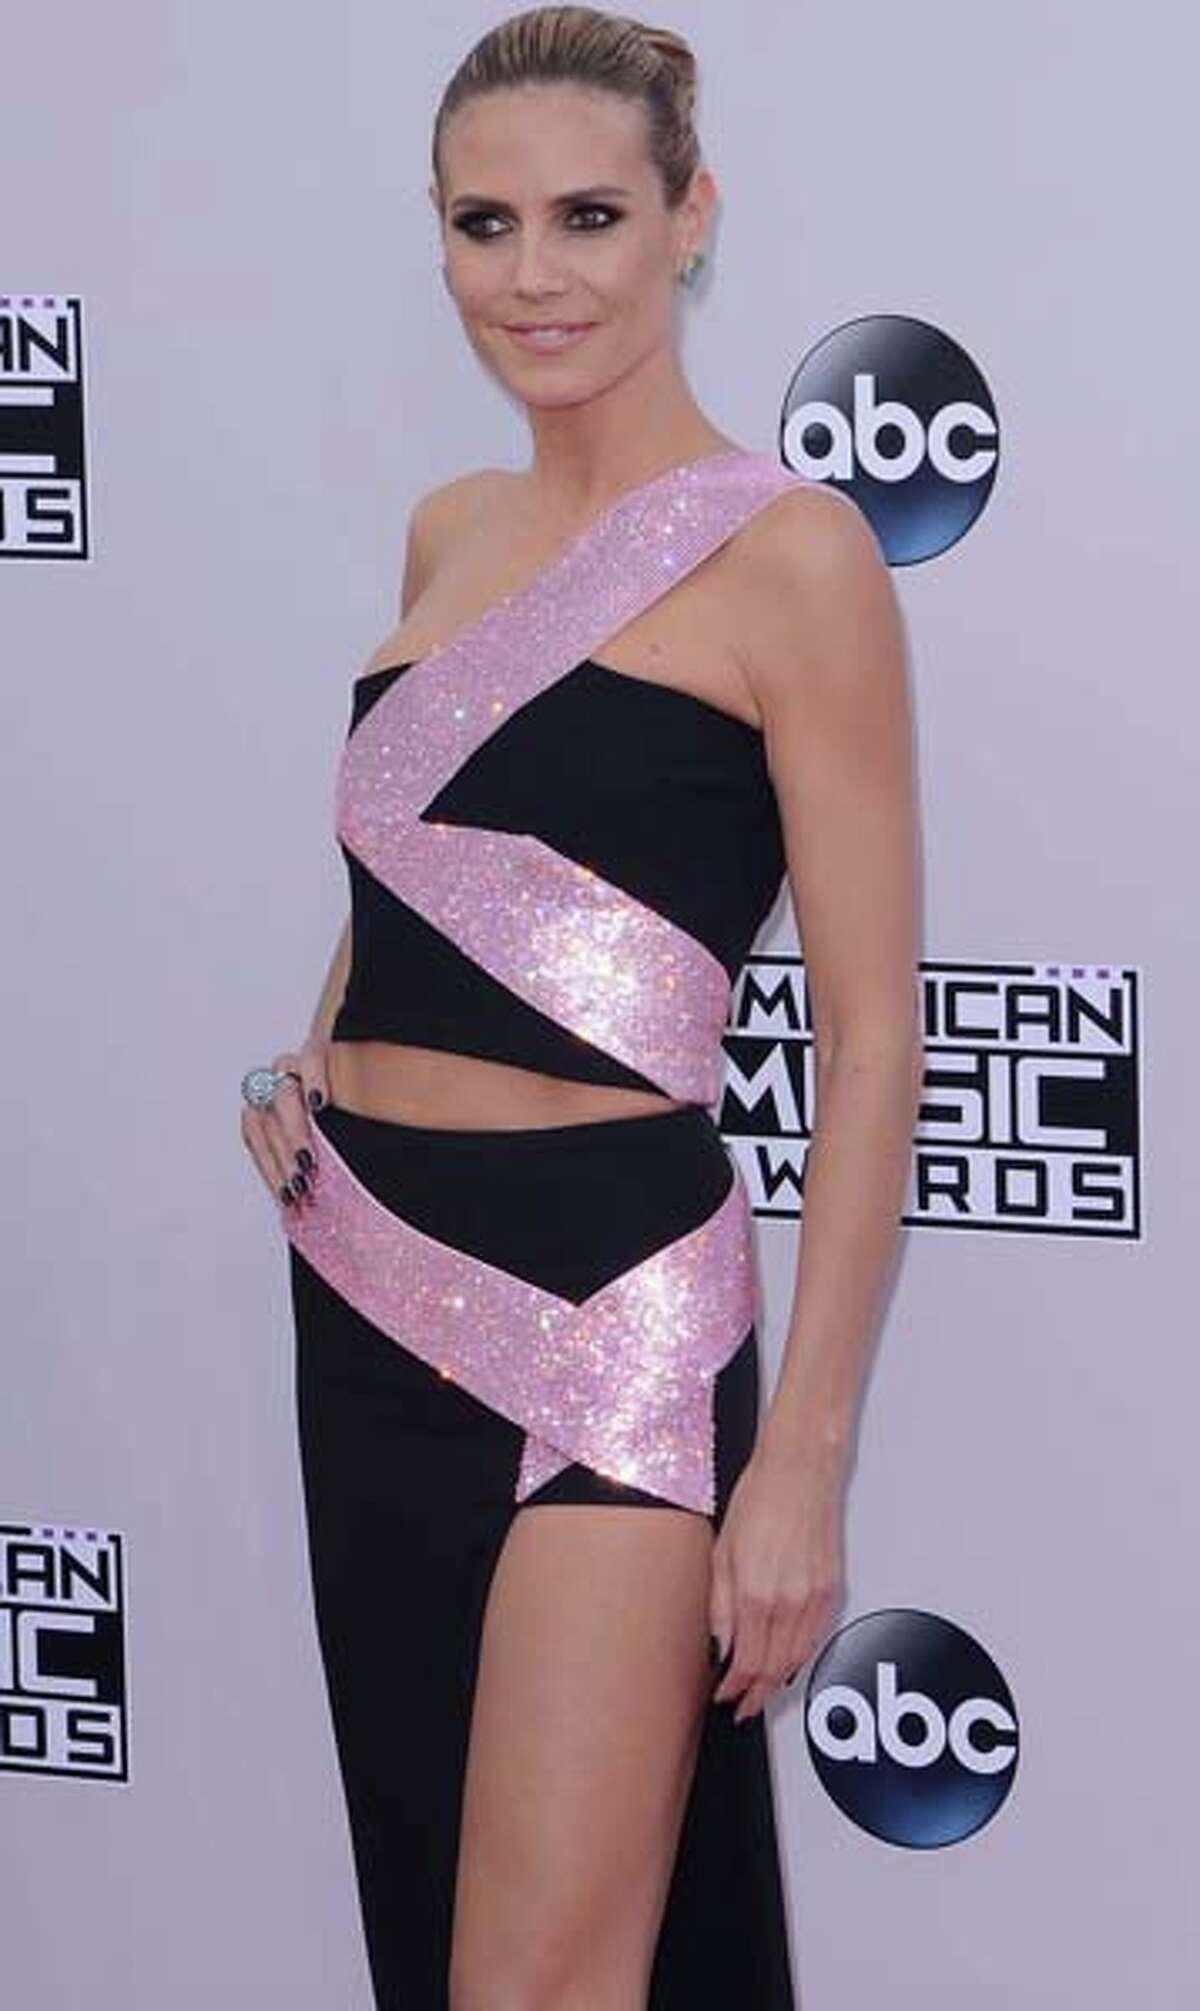 Heidi Klum, on the other hand, used a ribbon dancer with less form-fitting and kind of weird results.